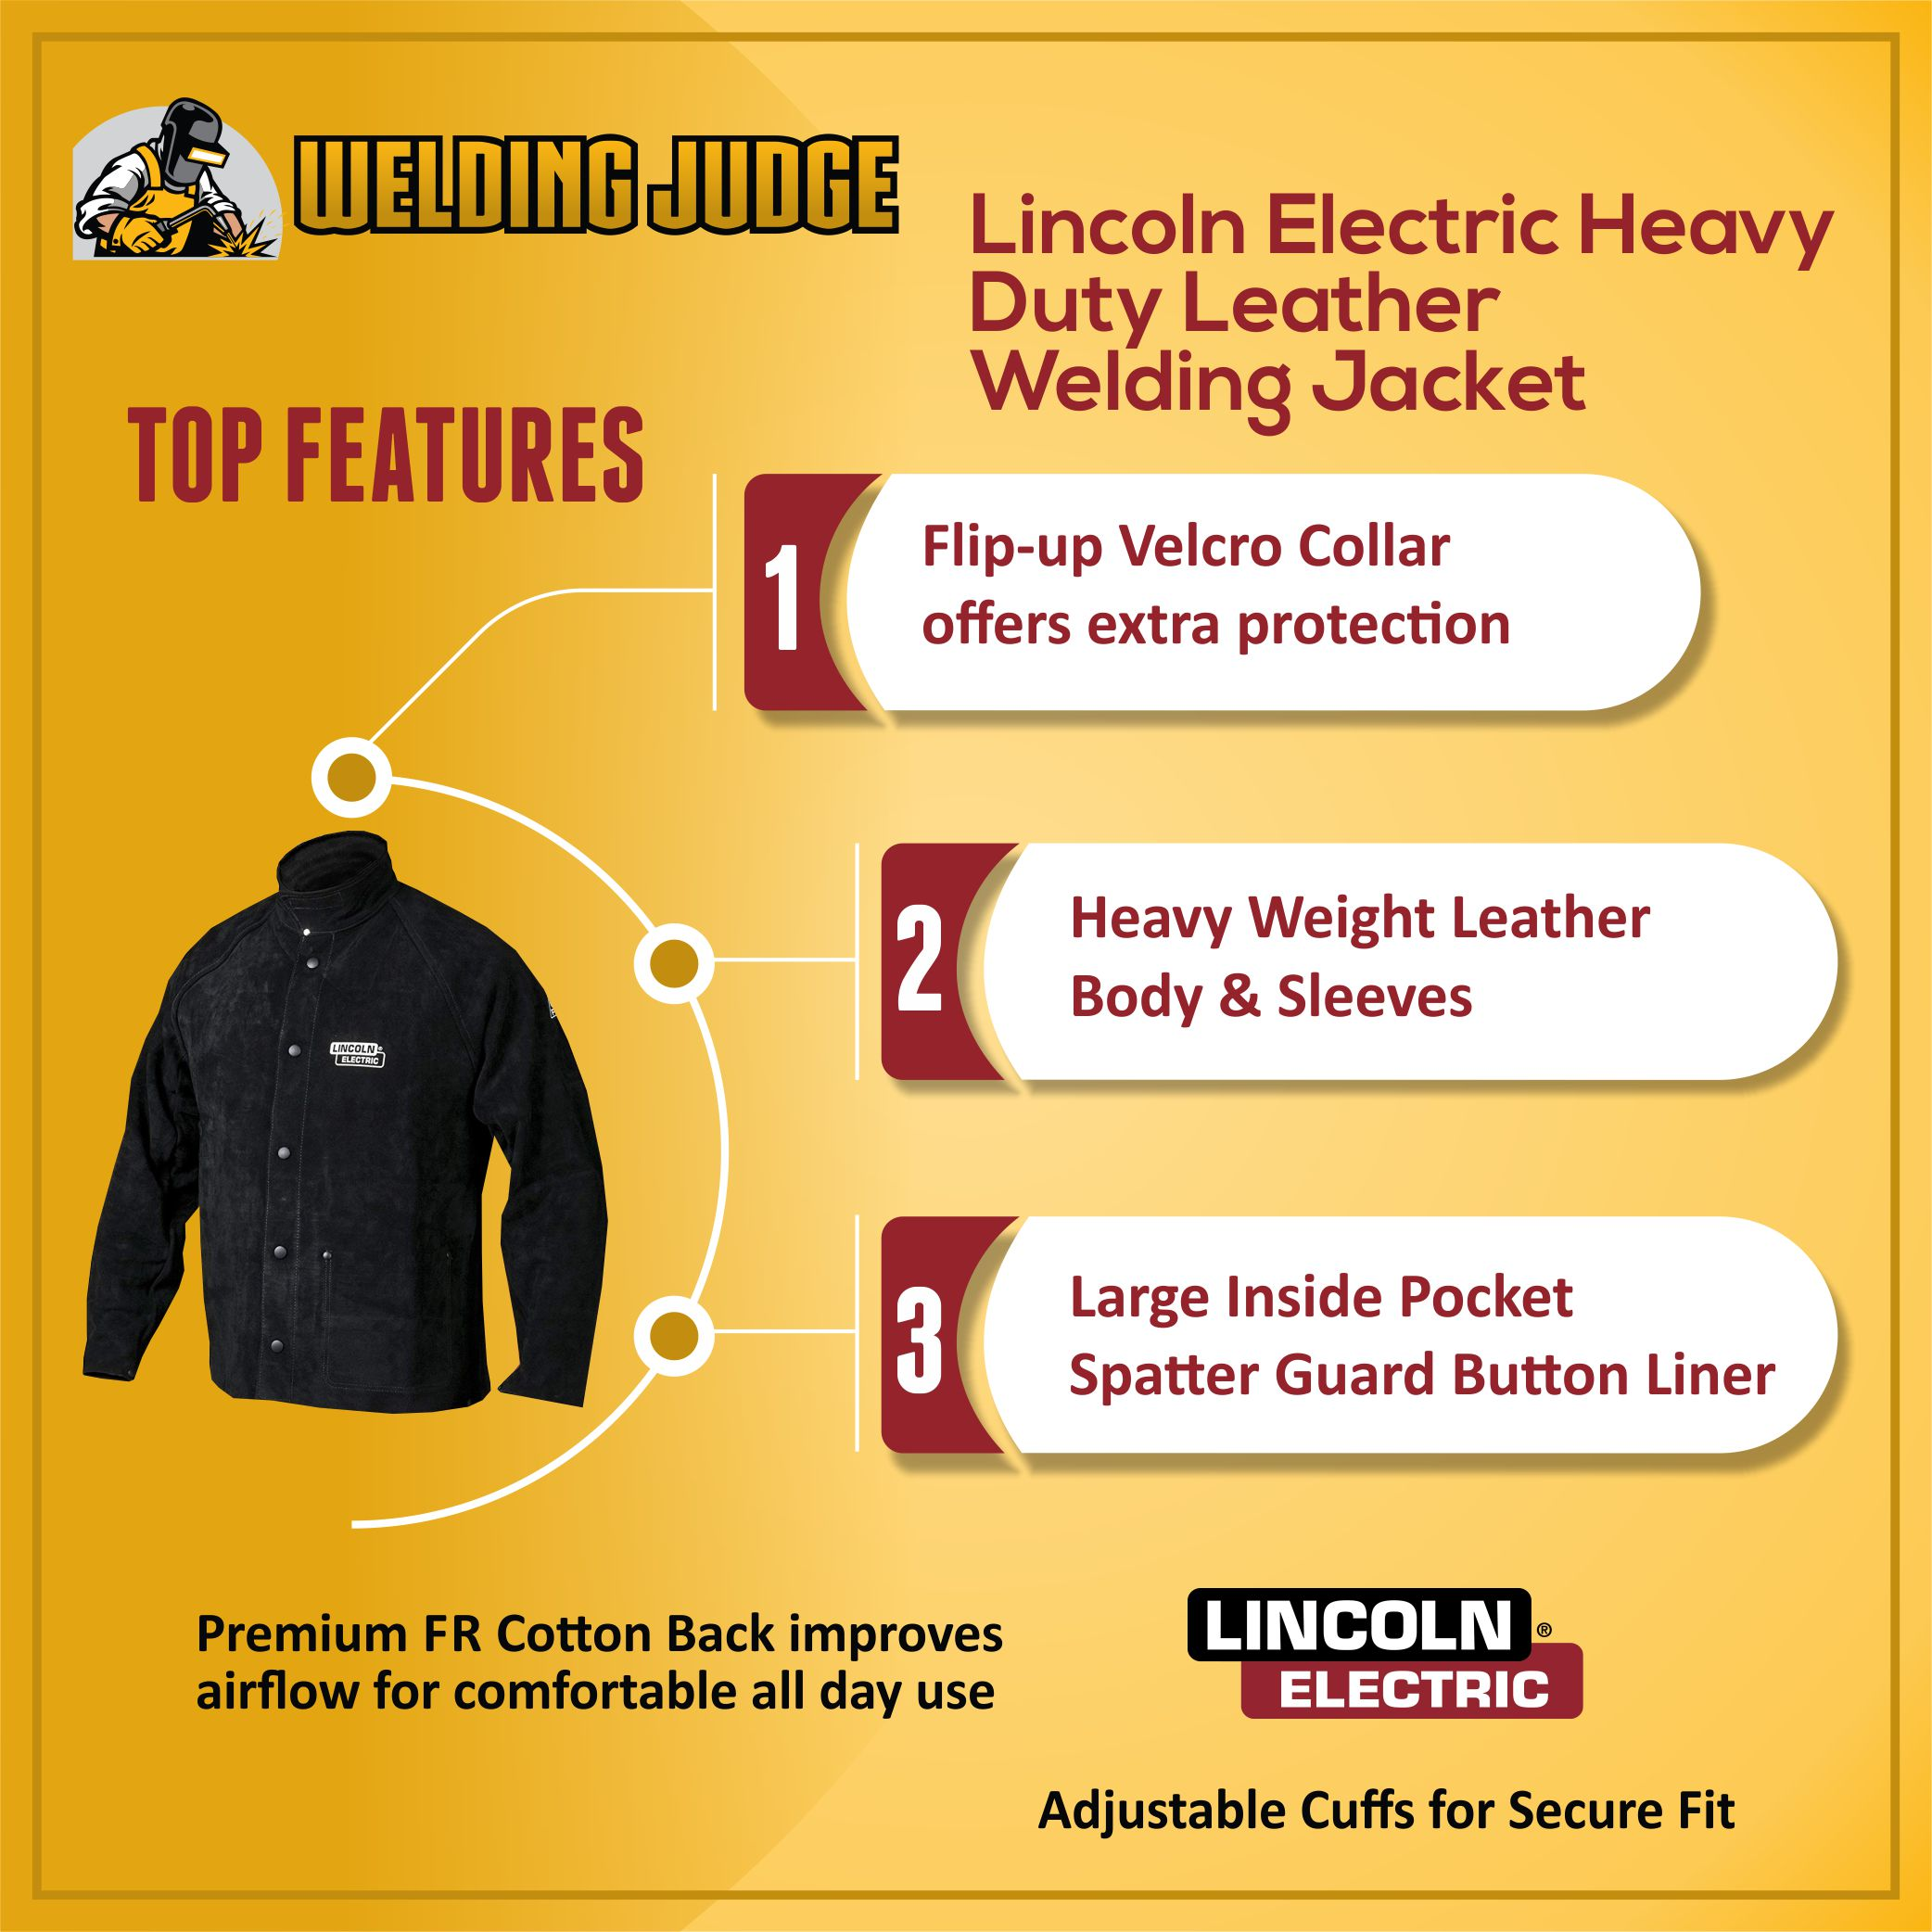 Lincoln Electric Heavy Duty Leather Welding Jacket infographic details